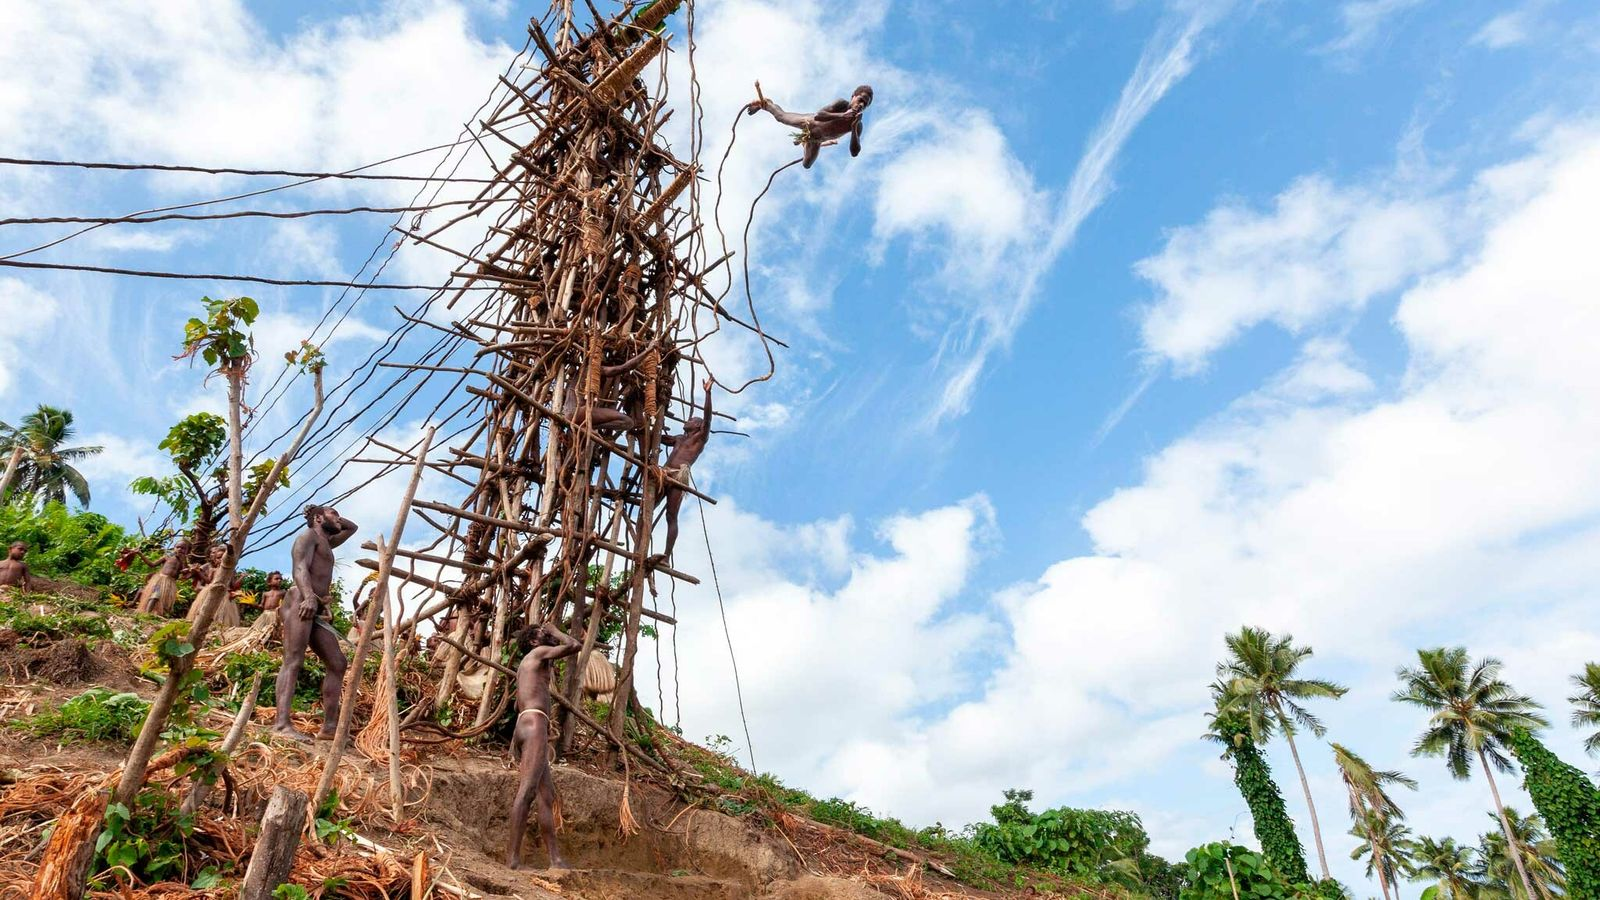 On Pentecost Island, in the Southern Pacific archipelago of Vanuatu, land diving participants must jump off ...